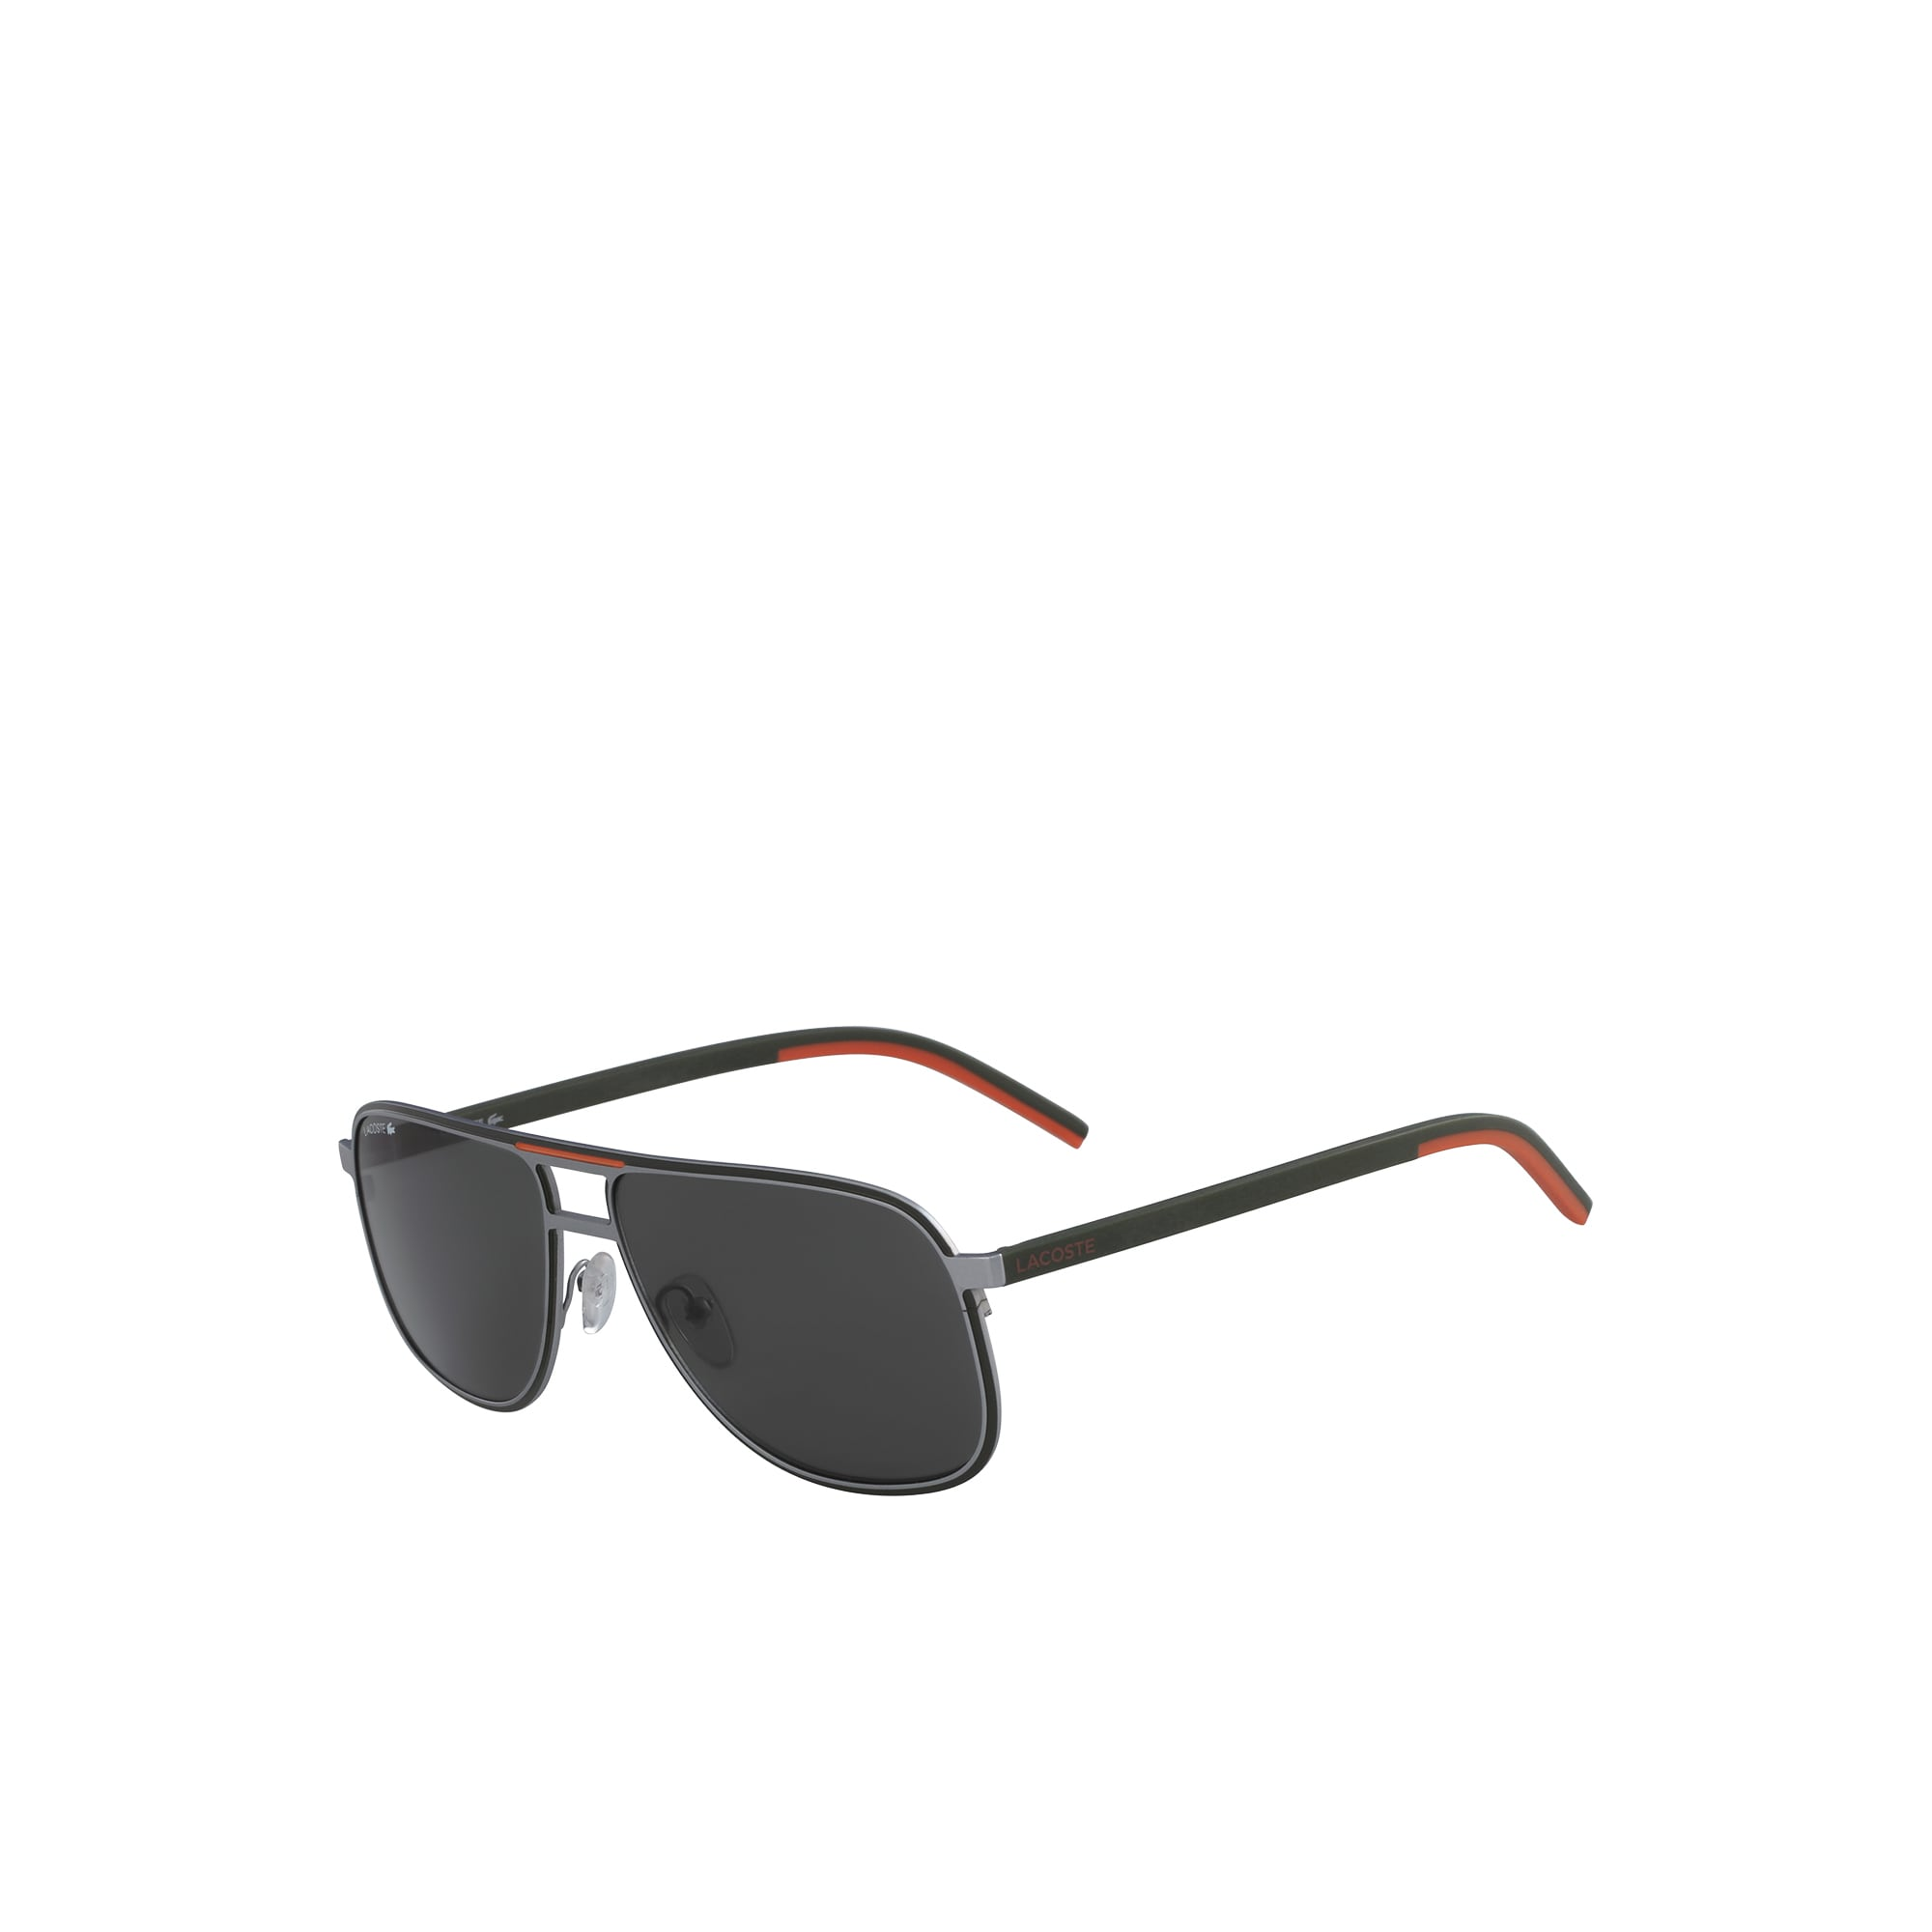 Men's Stripes and Piping Sunglasses